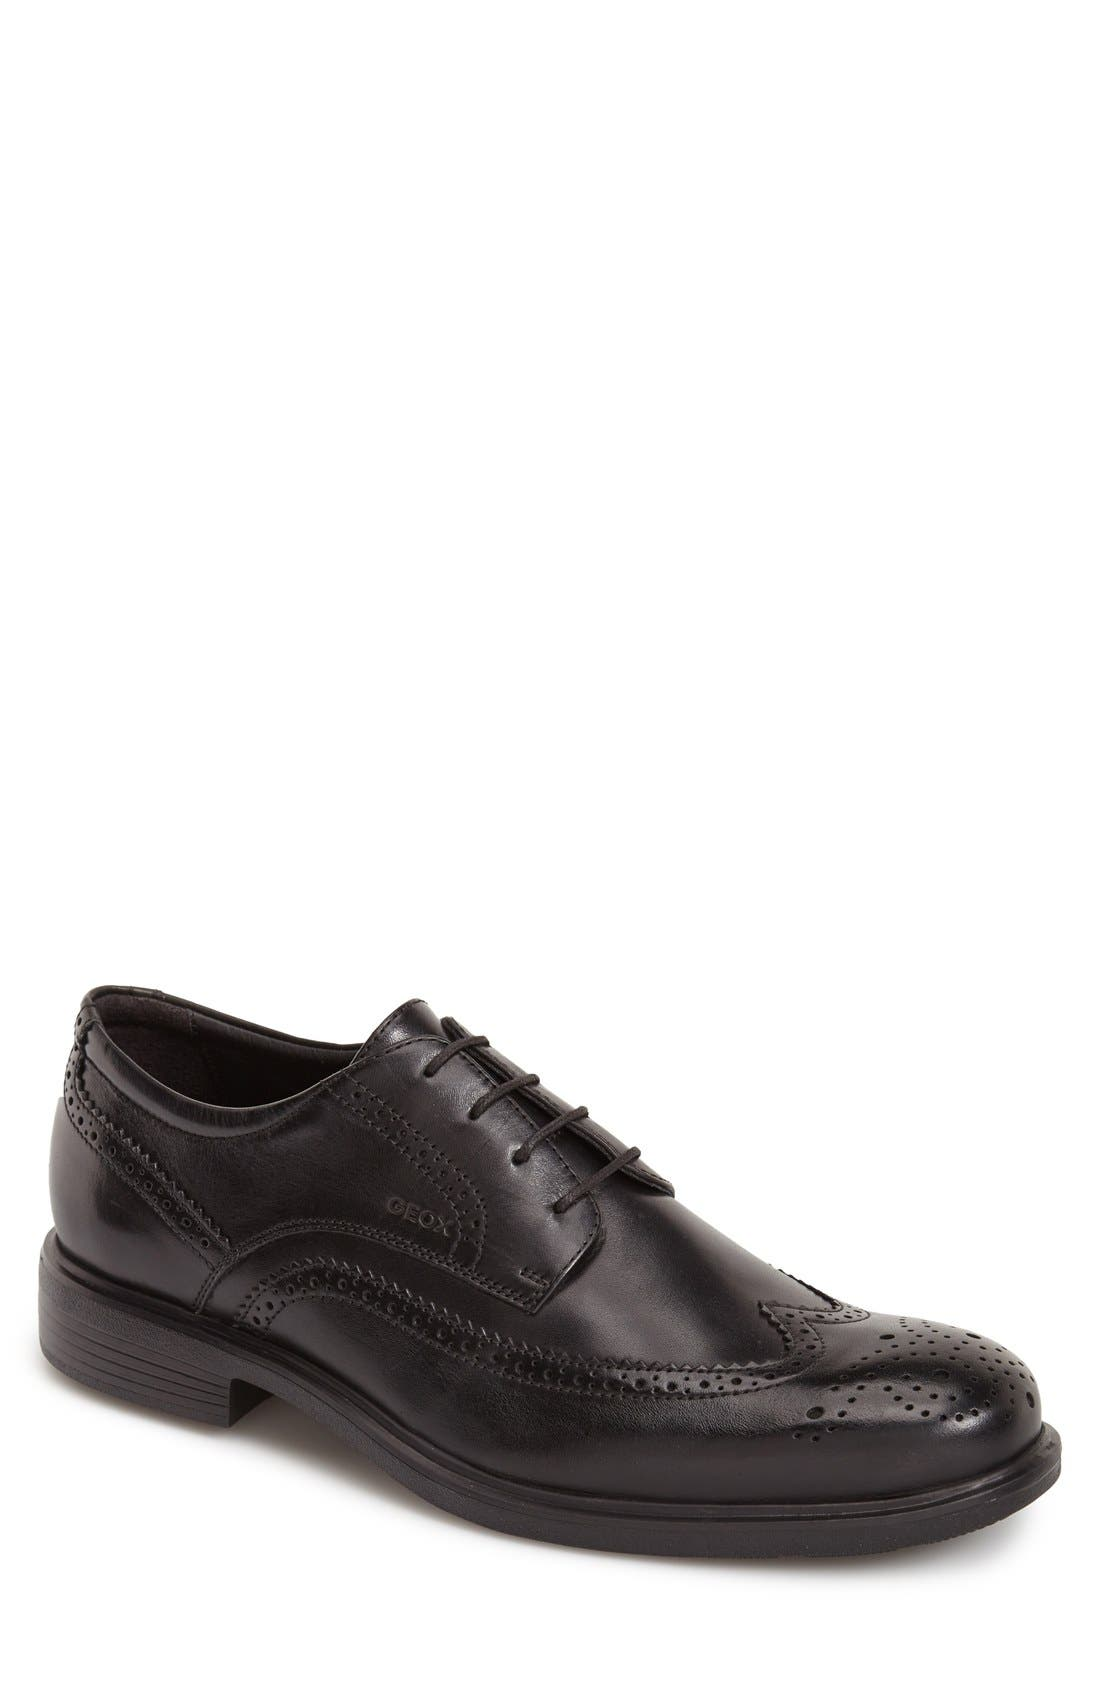 'Dublin 4' Wingtip,                         Main,                         color, Black